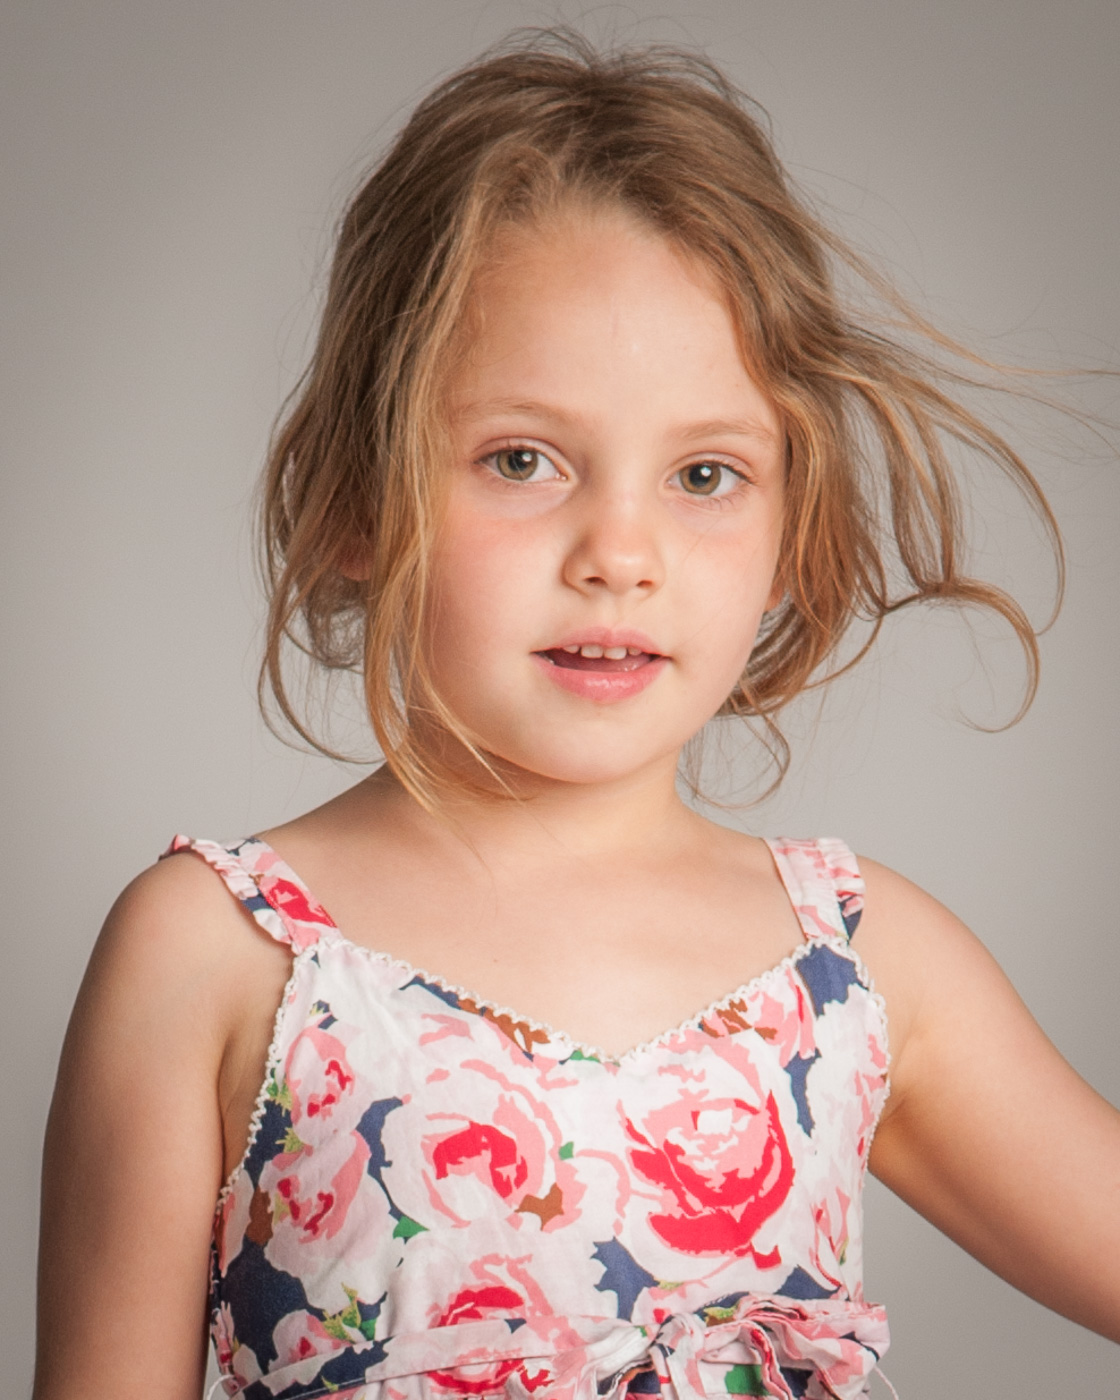 Child studio portrait photography - Brooklyn